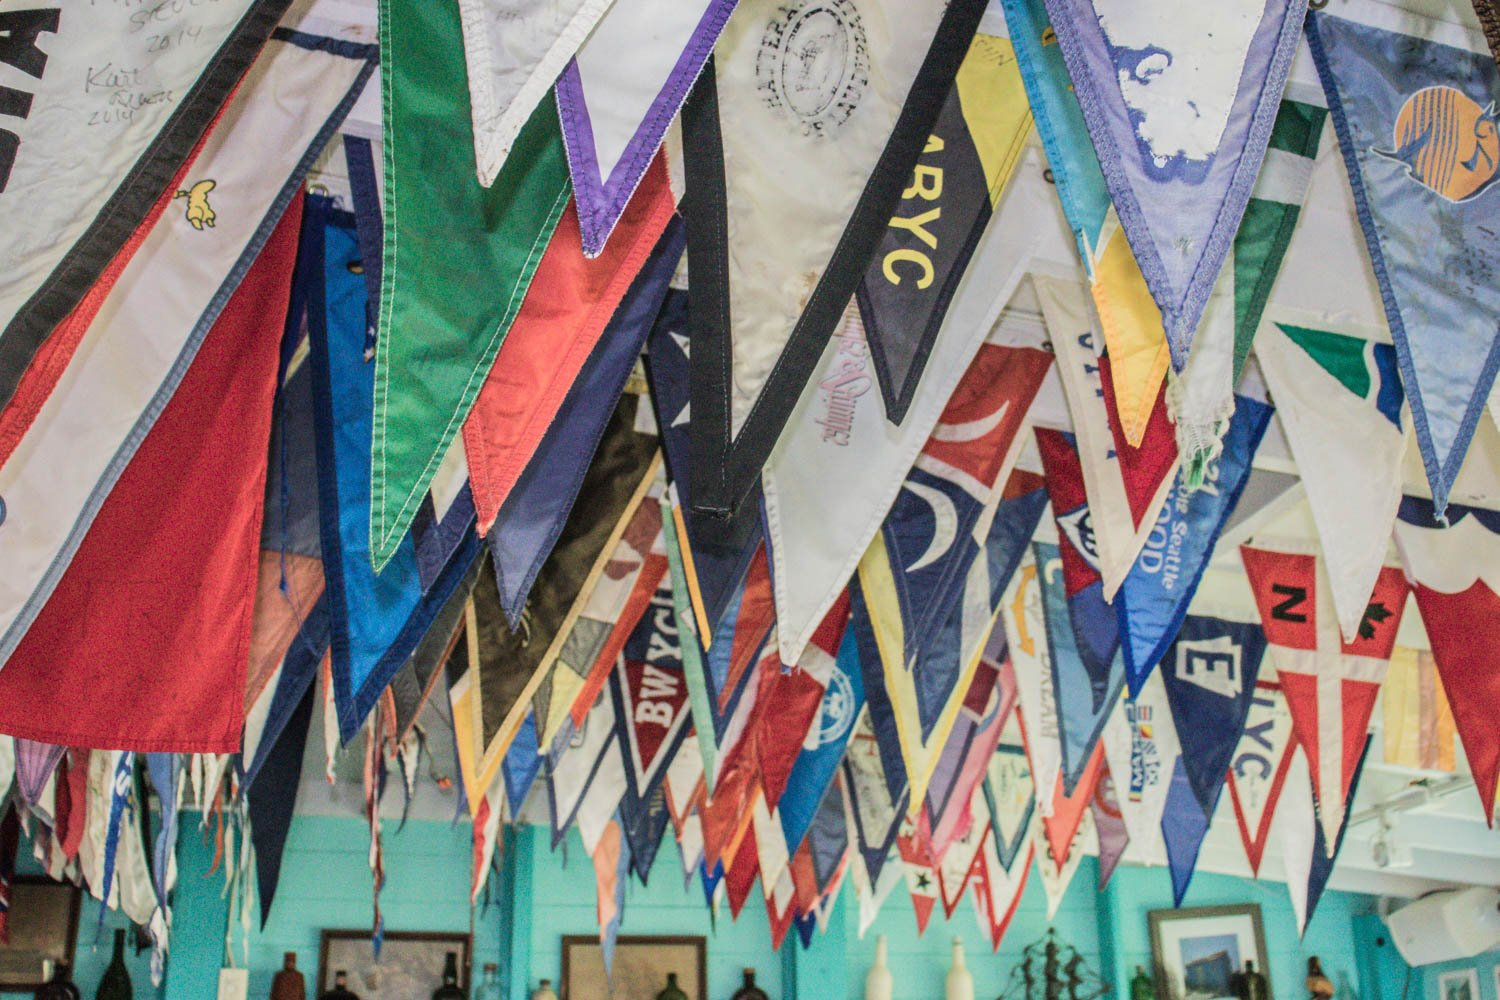 Staniel Cay Yacht Club Bar and restaurant has many yacht and sailing flags adorning the ceilings of the bar. The Staniel Cay Yacht club is also a top Exuma Hotel.